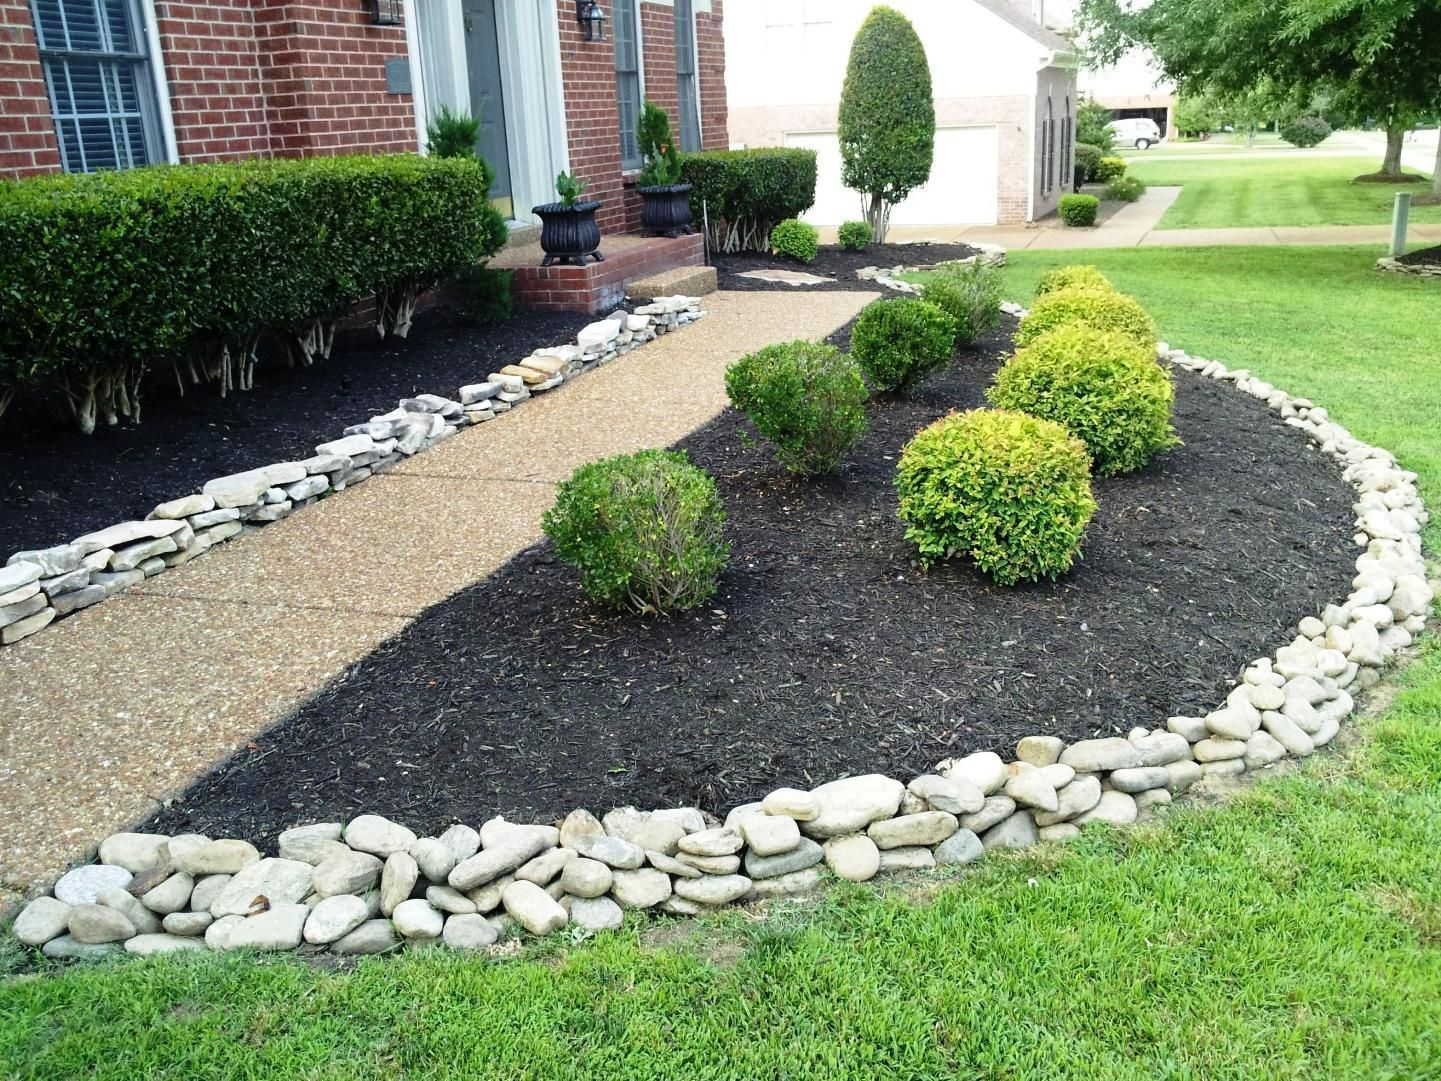 Types of stones for landscaping a garden 70